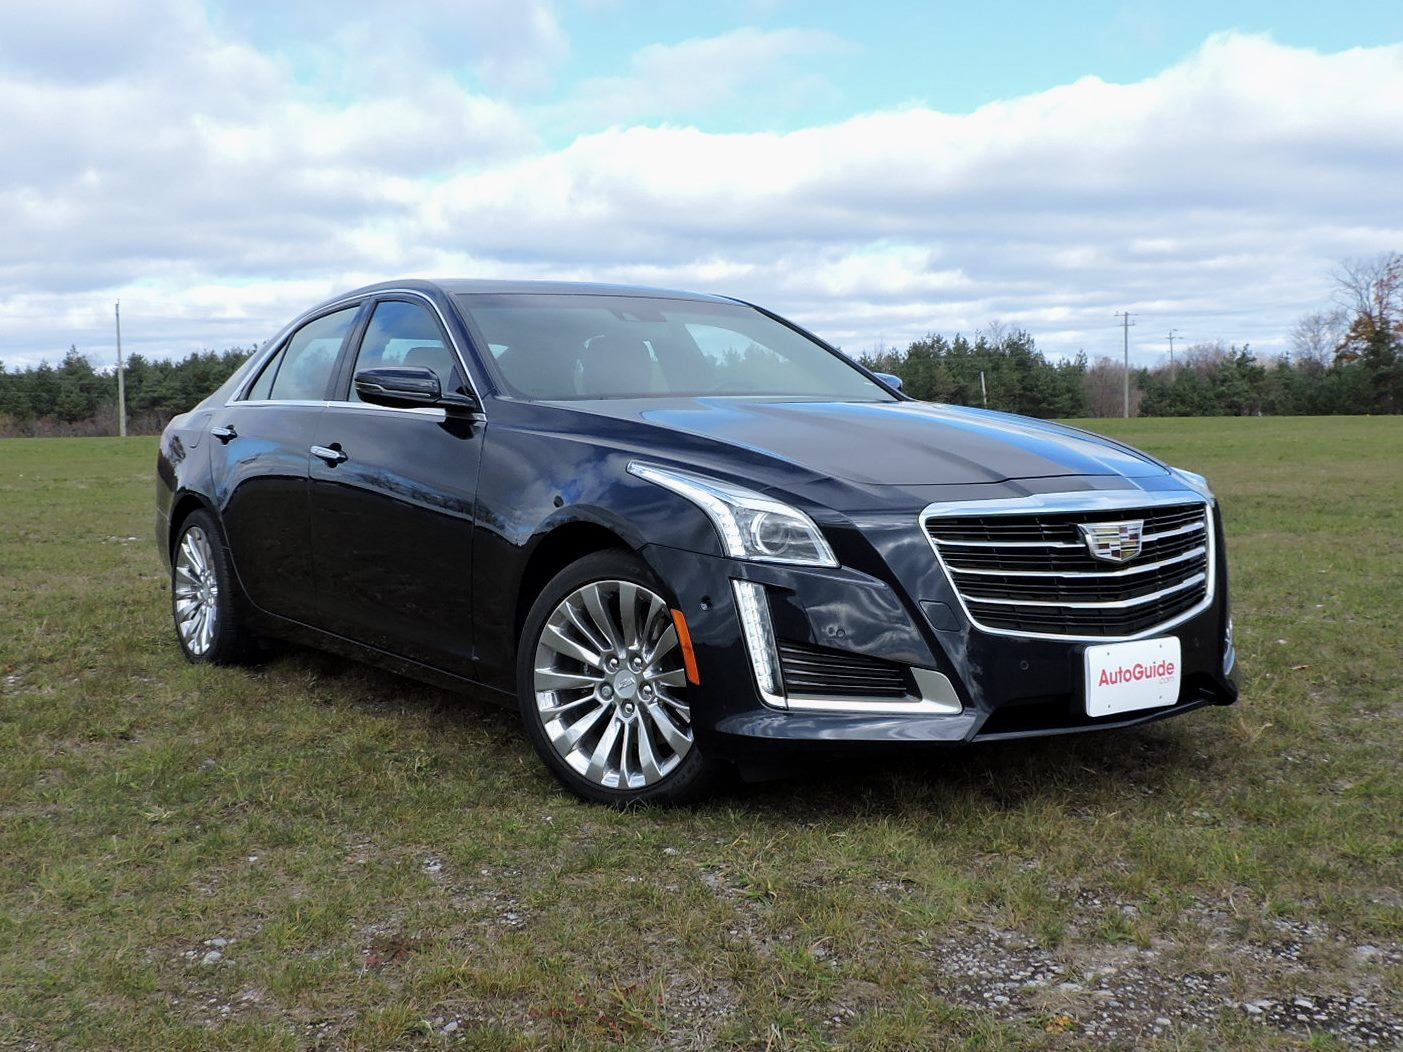 Cadillac Price >> 2016 Cadillac CTS 3.6L AWD Review - AutoGuide.com News